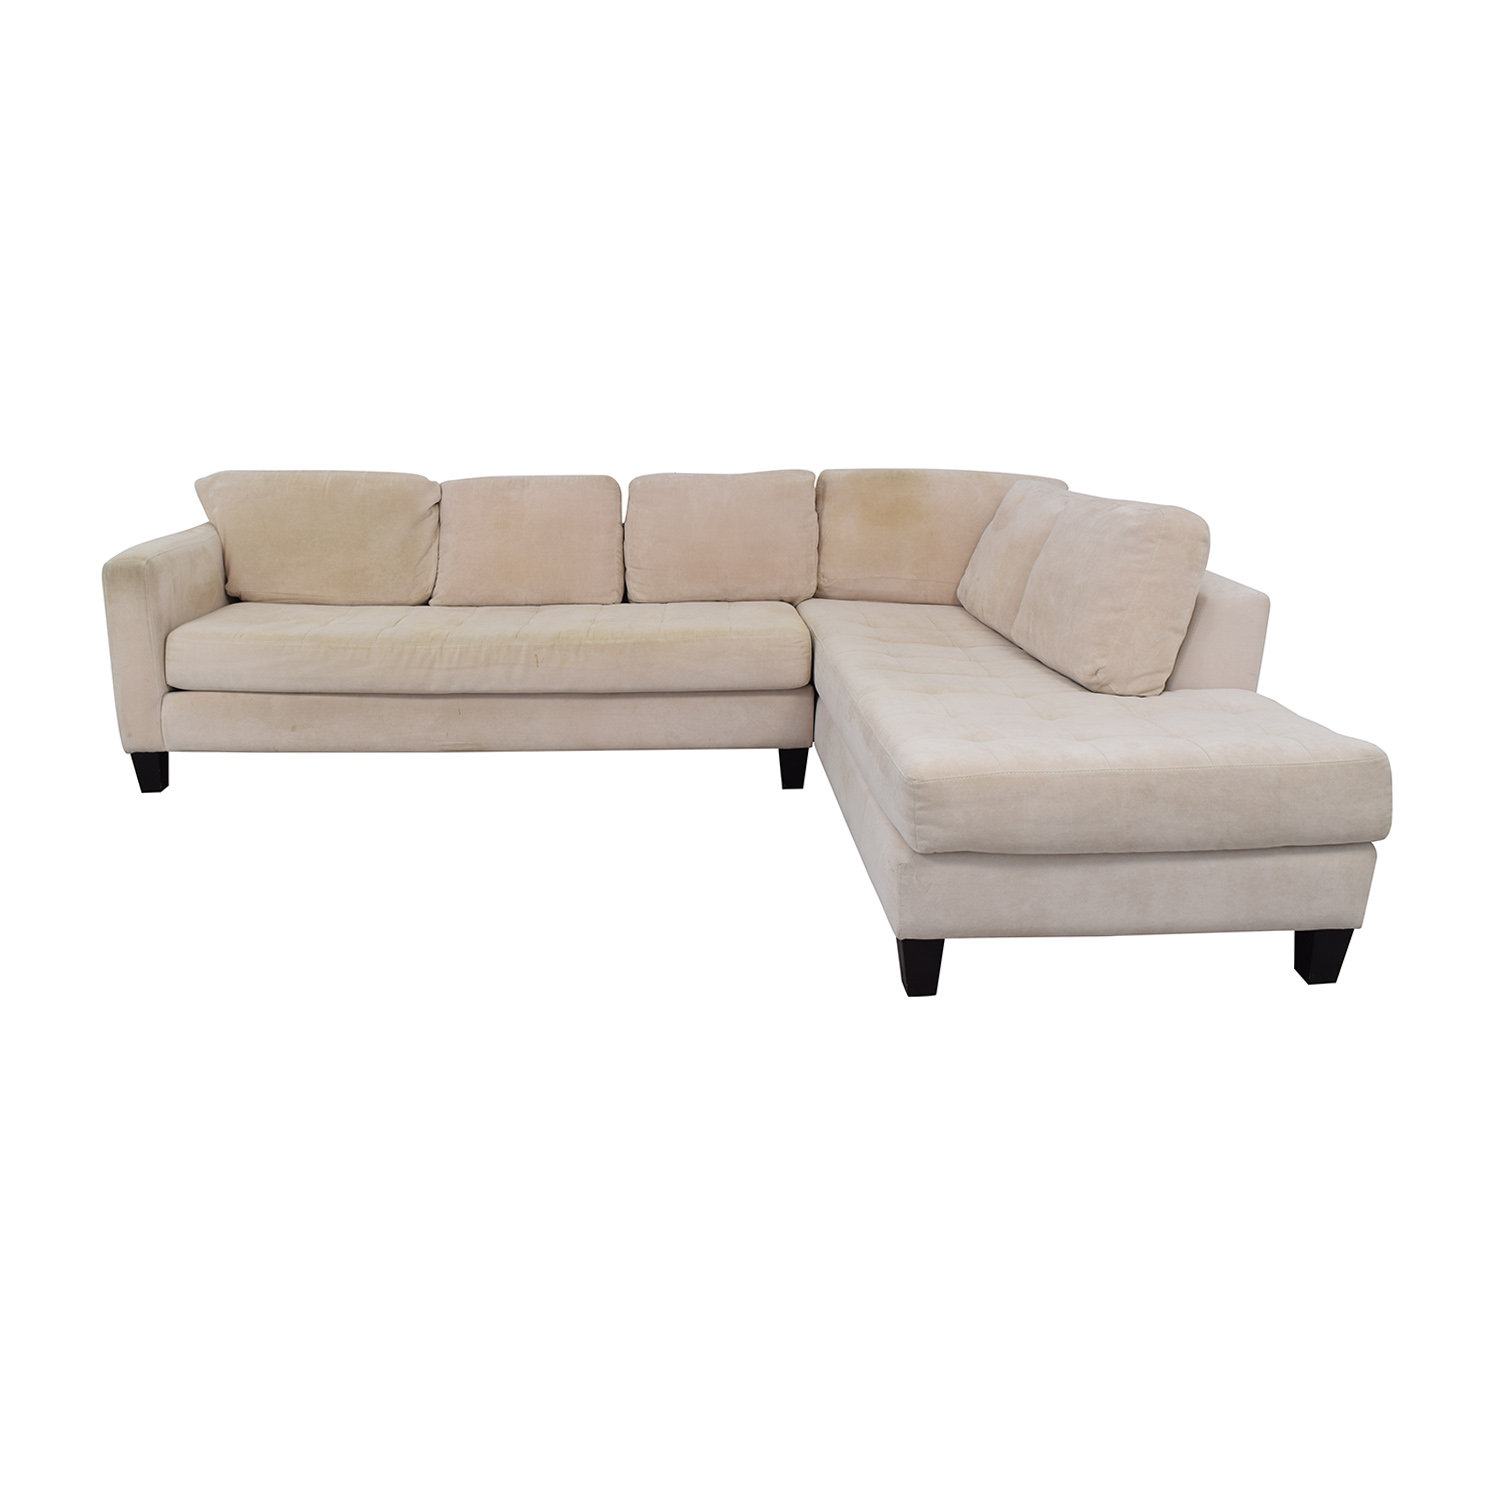 buy Macy's Beige Sofa Macy's Sectionals